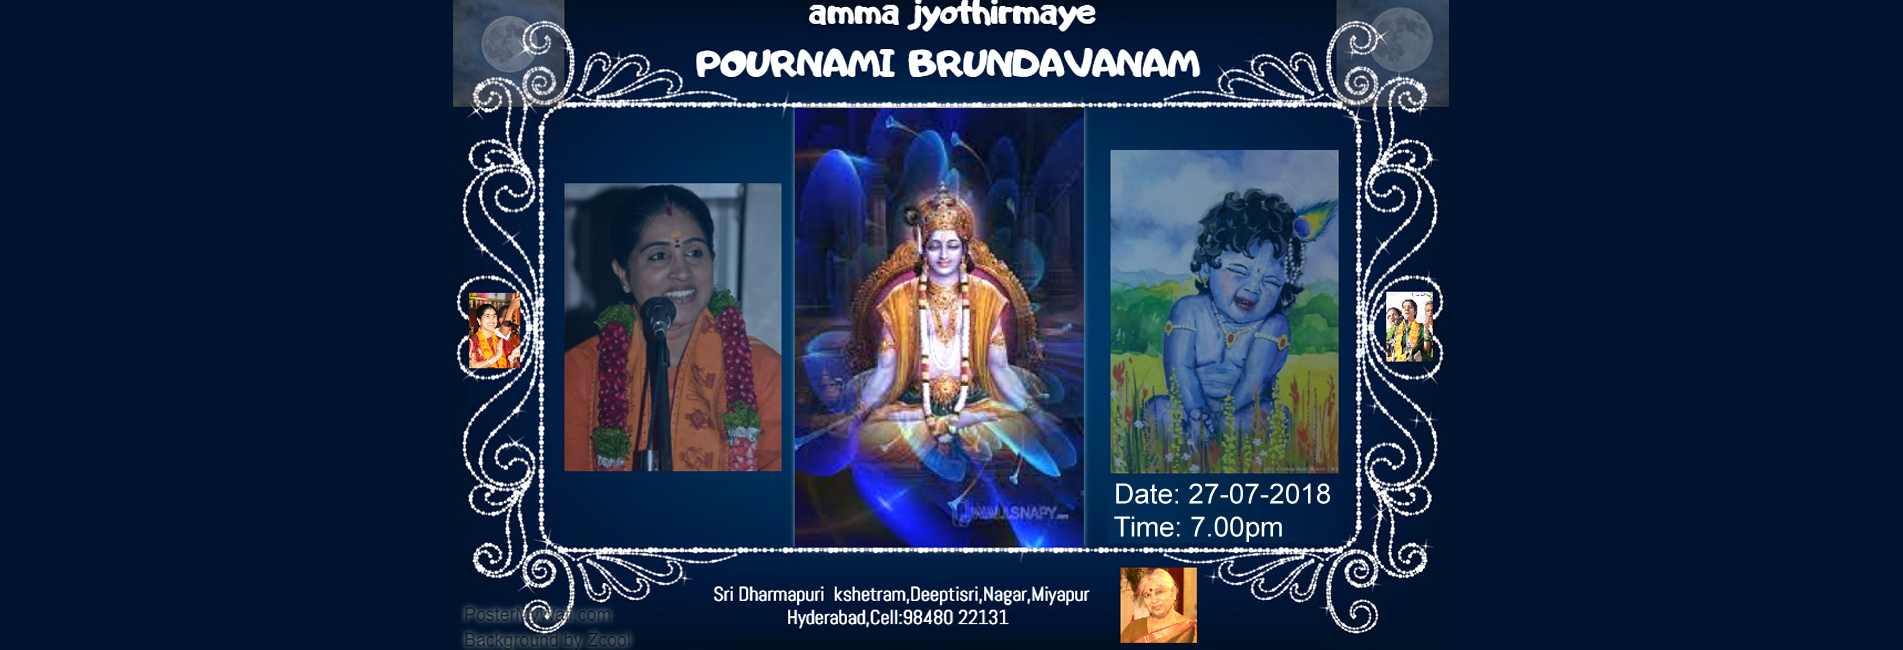 Pournami Brundavanam on 27th June 2018 Time @ 7pm